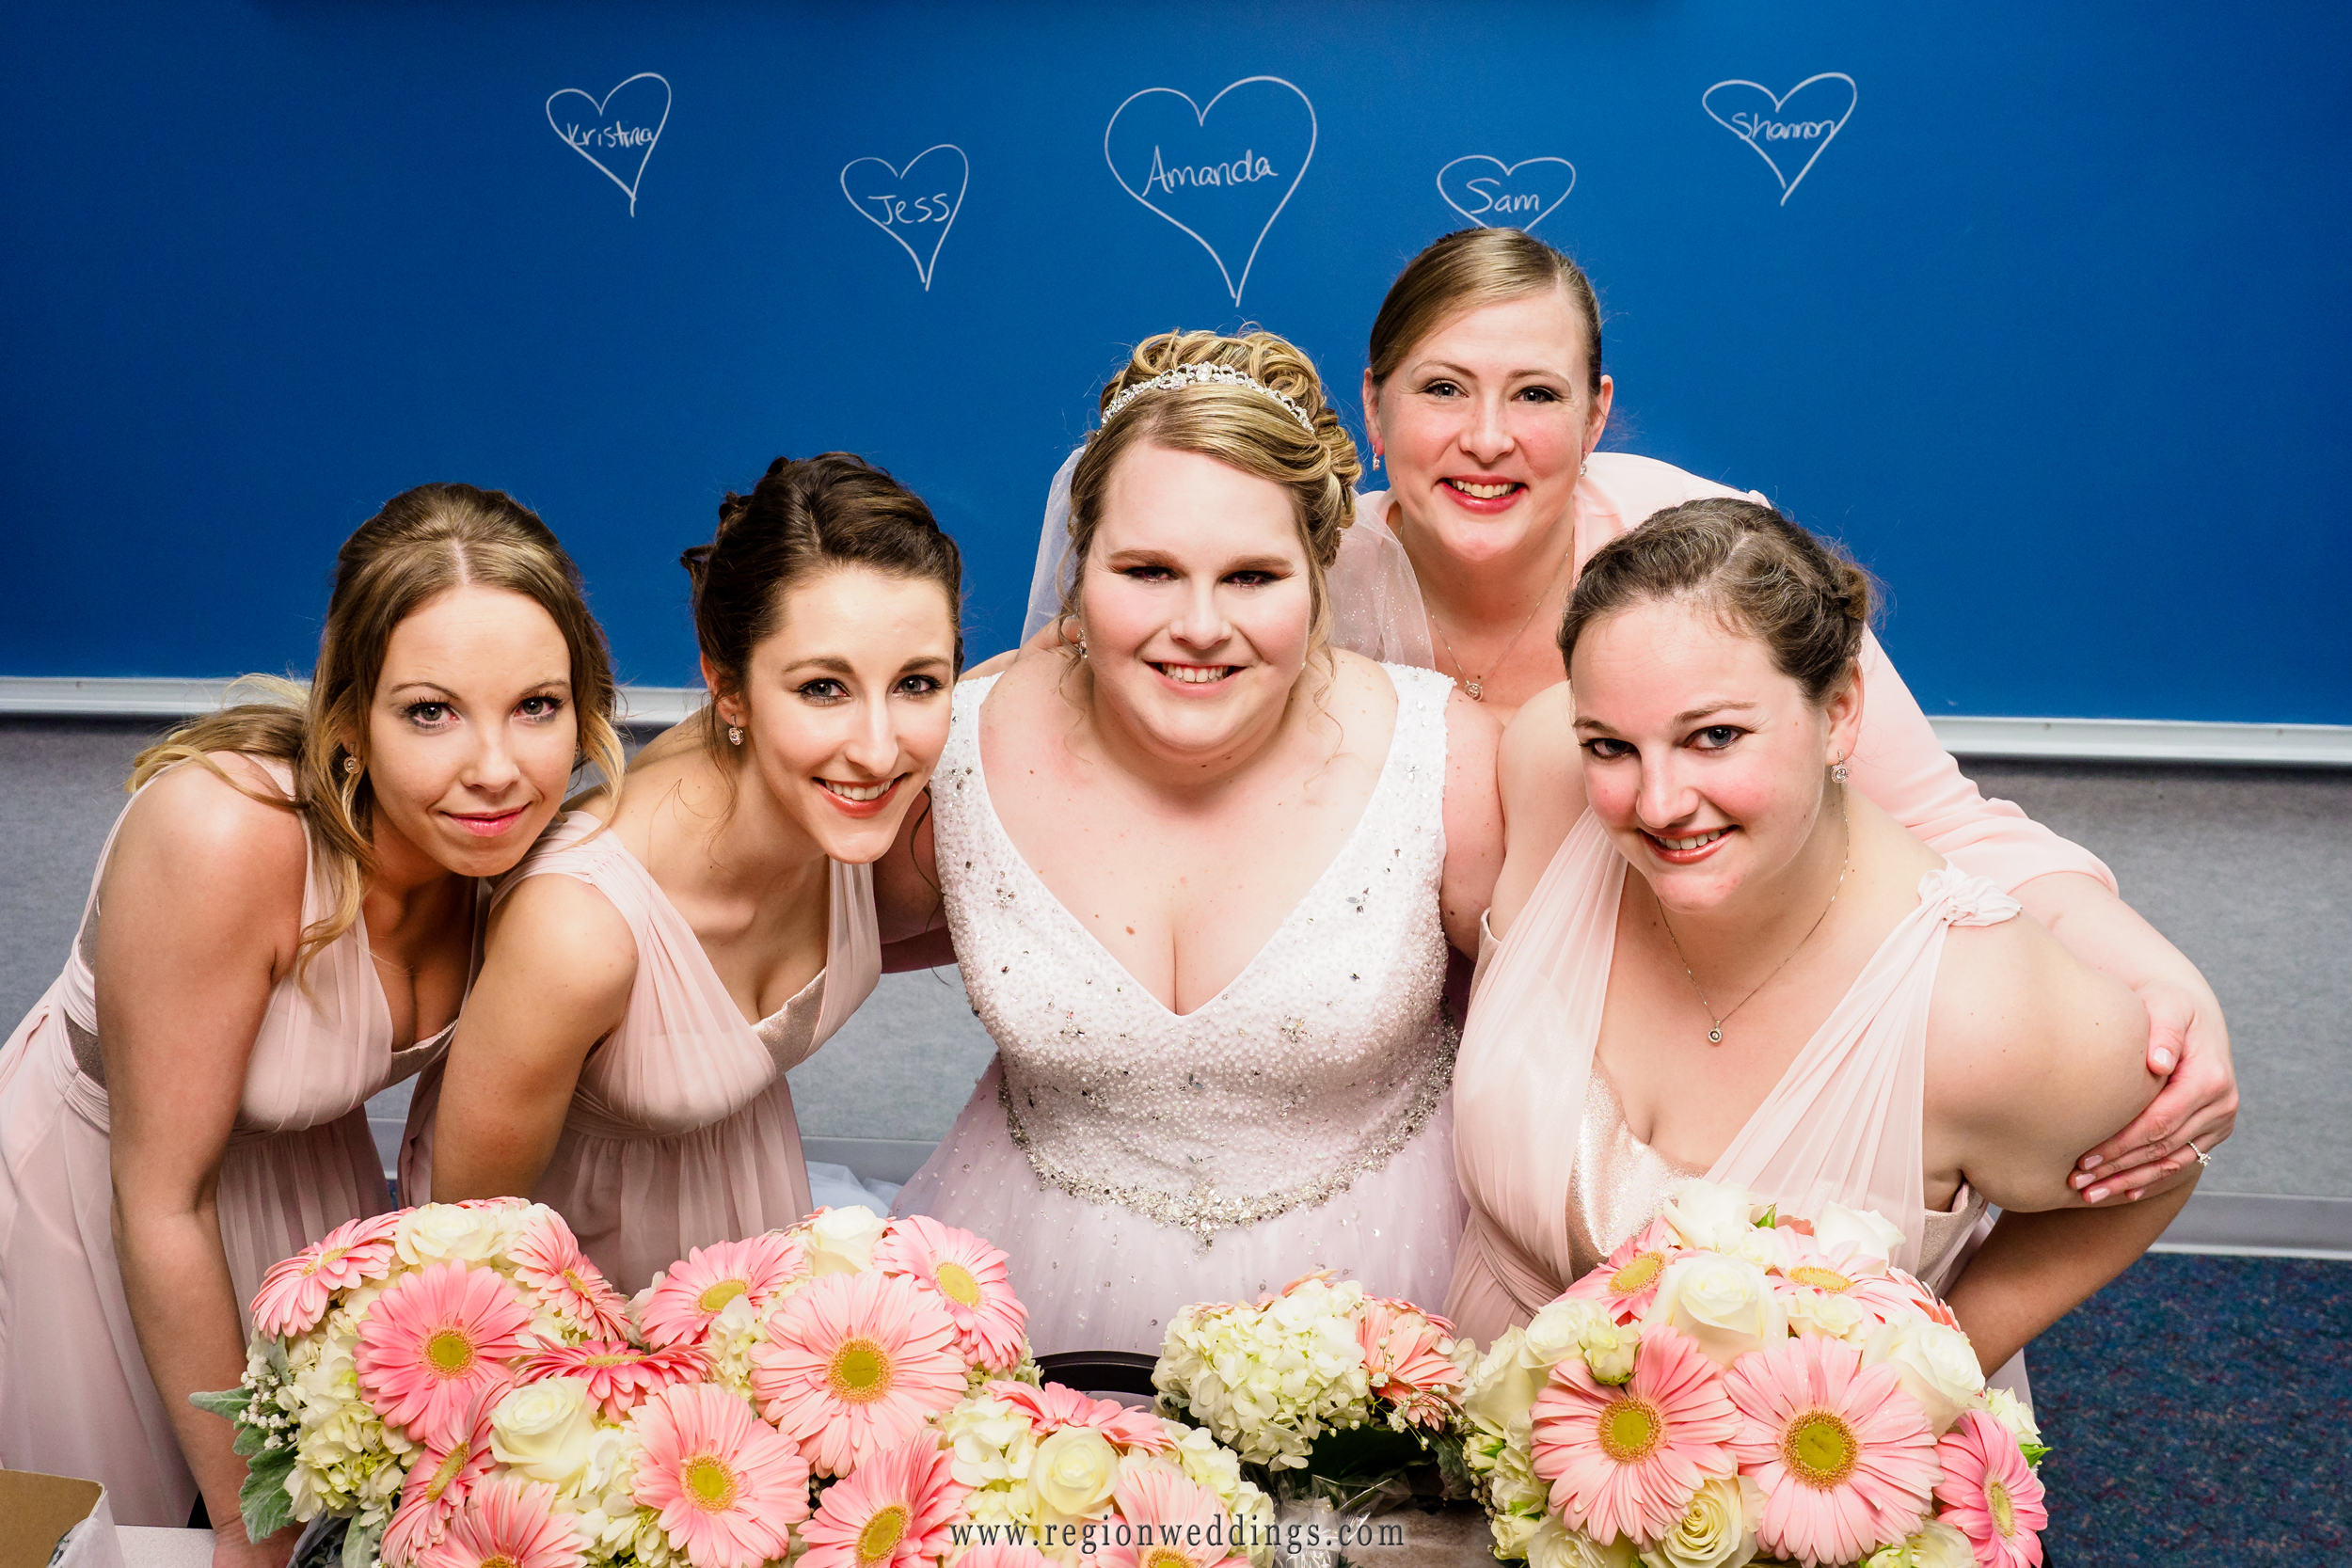 Fun bridesmaids photo with hearts on a chalkboard.